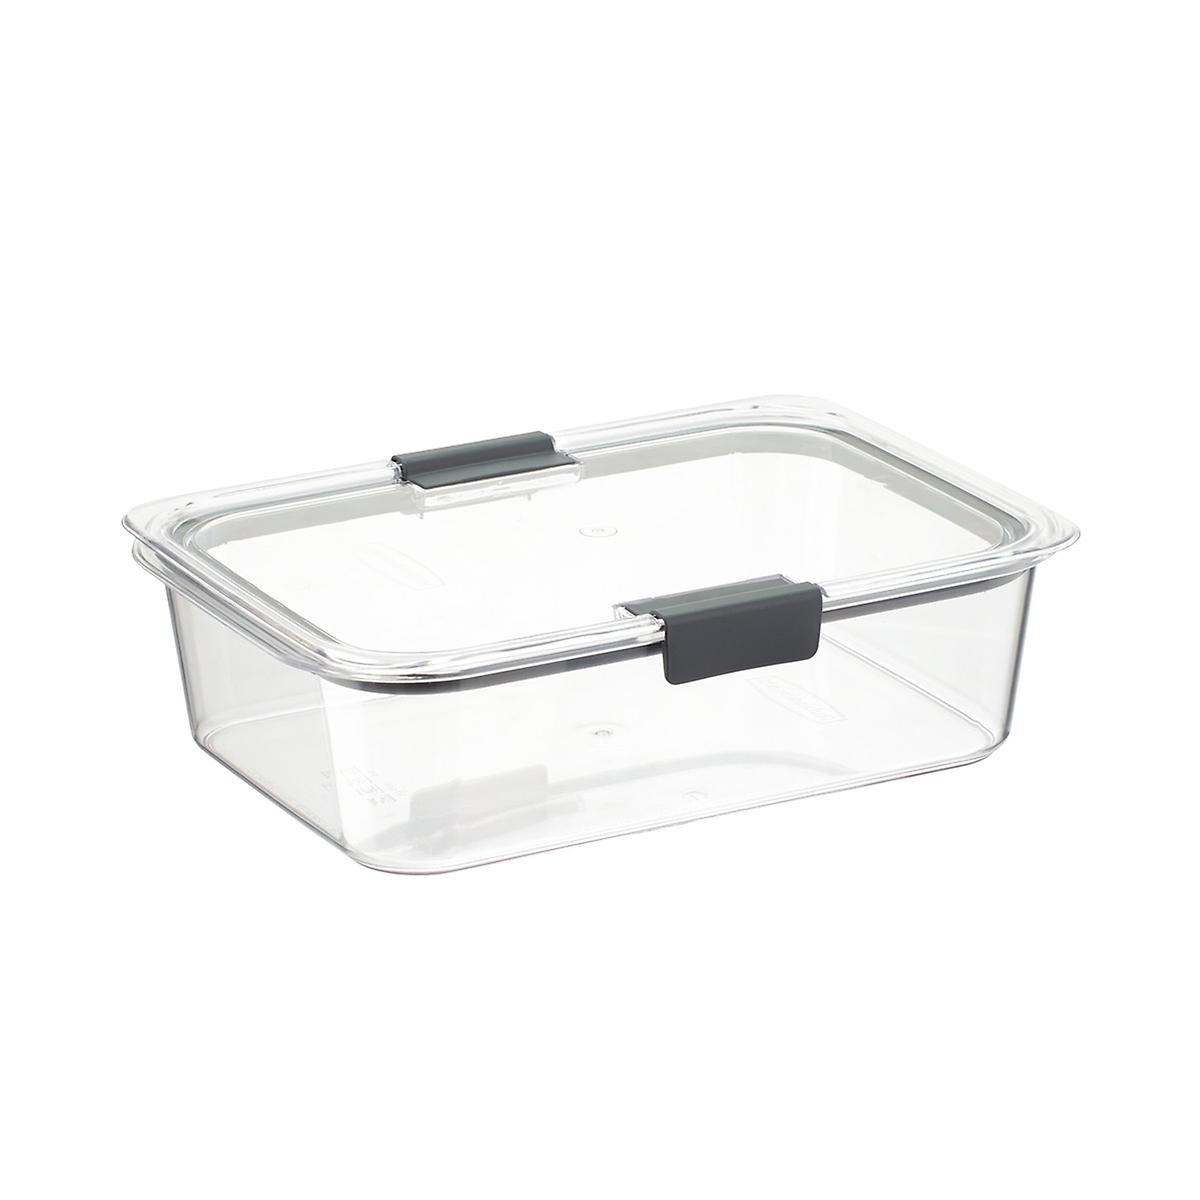 Rubbermaid Brilliance Food Storage Containers The Container Store